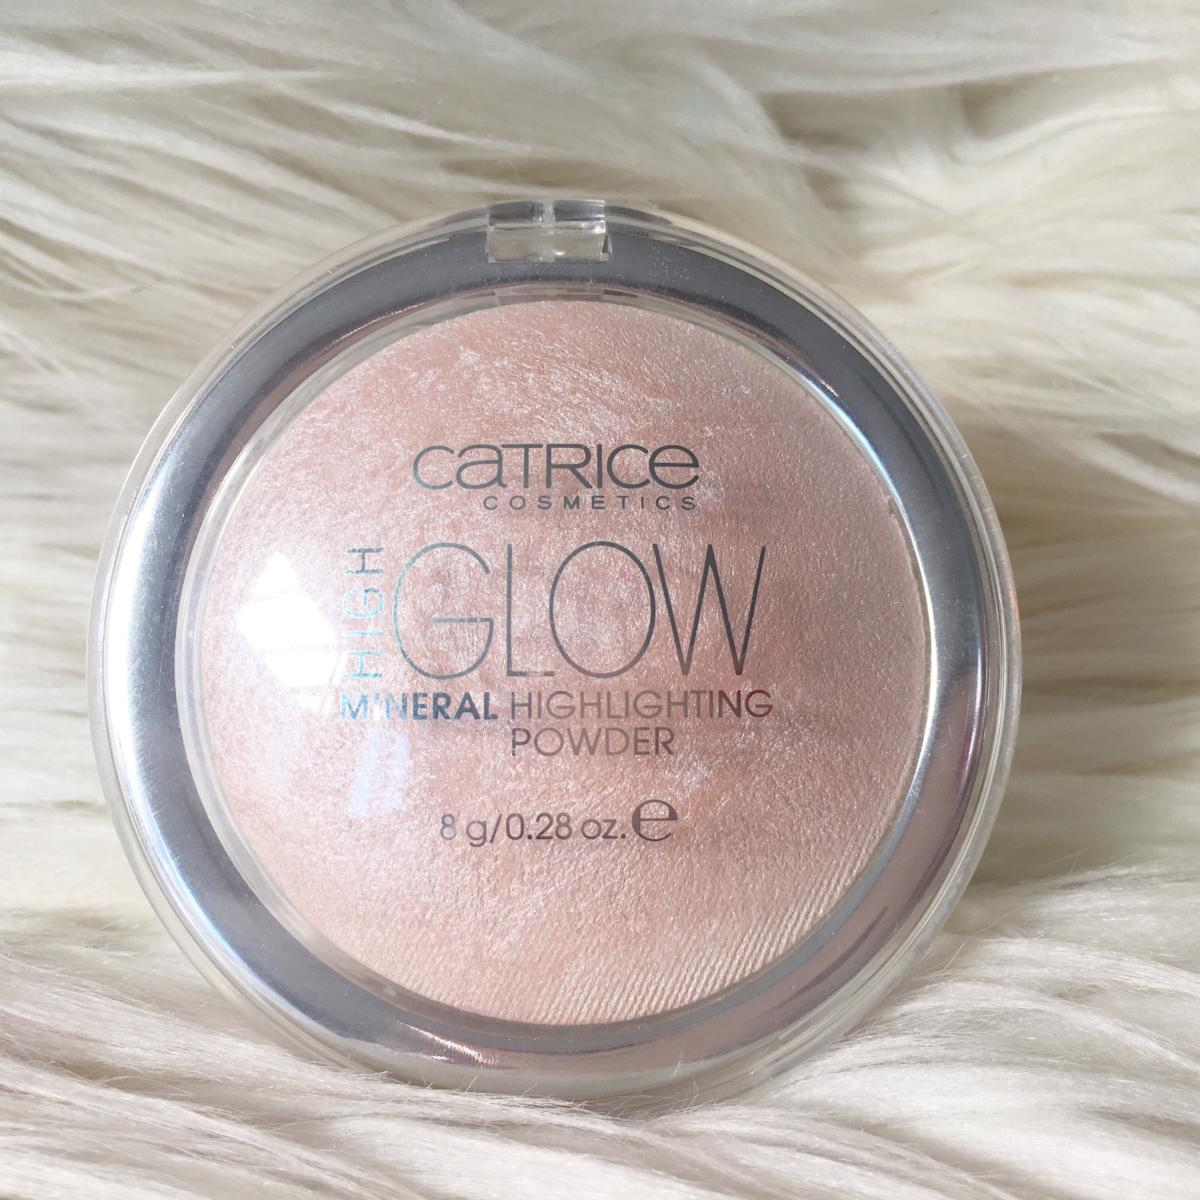 Catrice high glow mineral